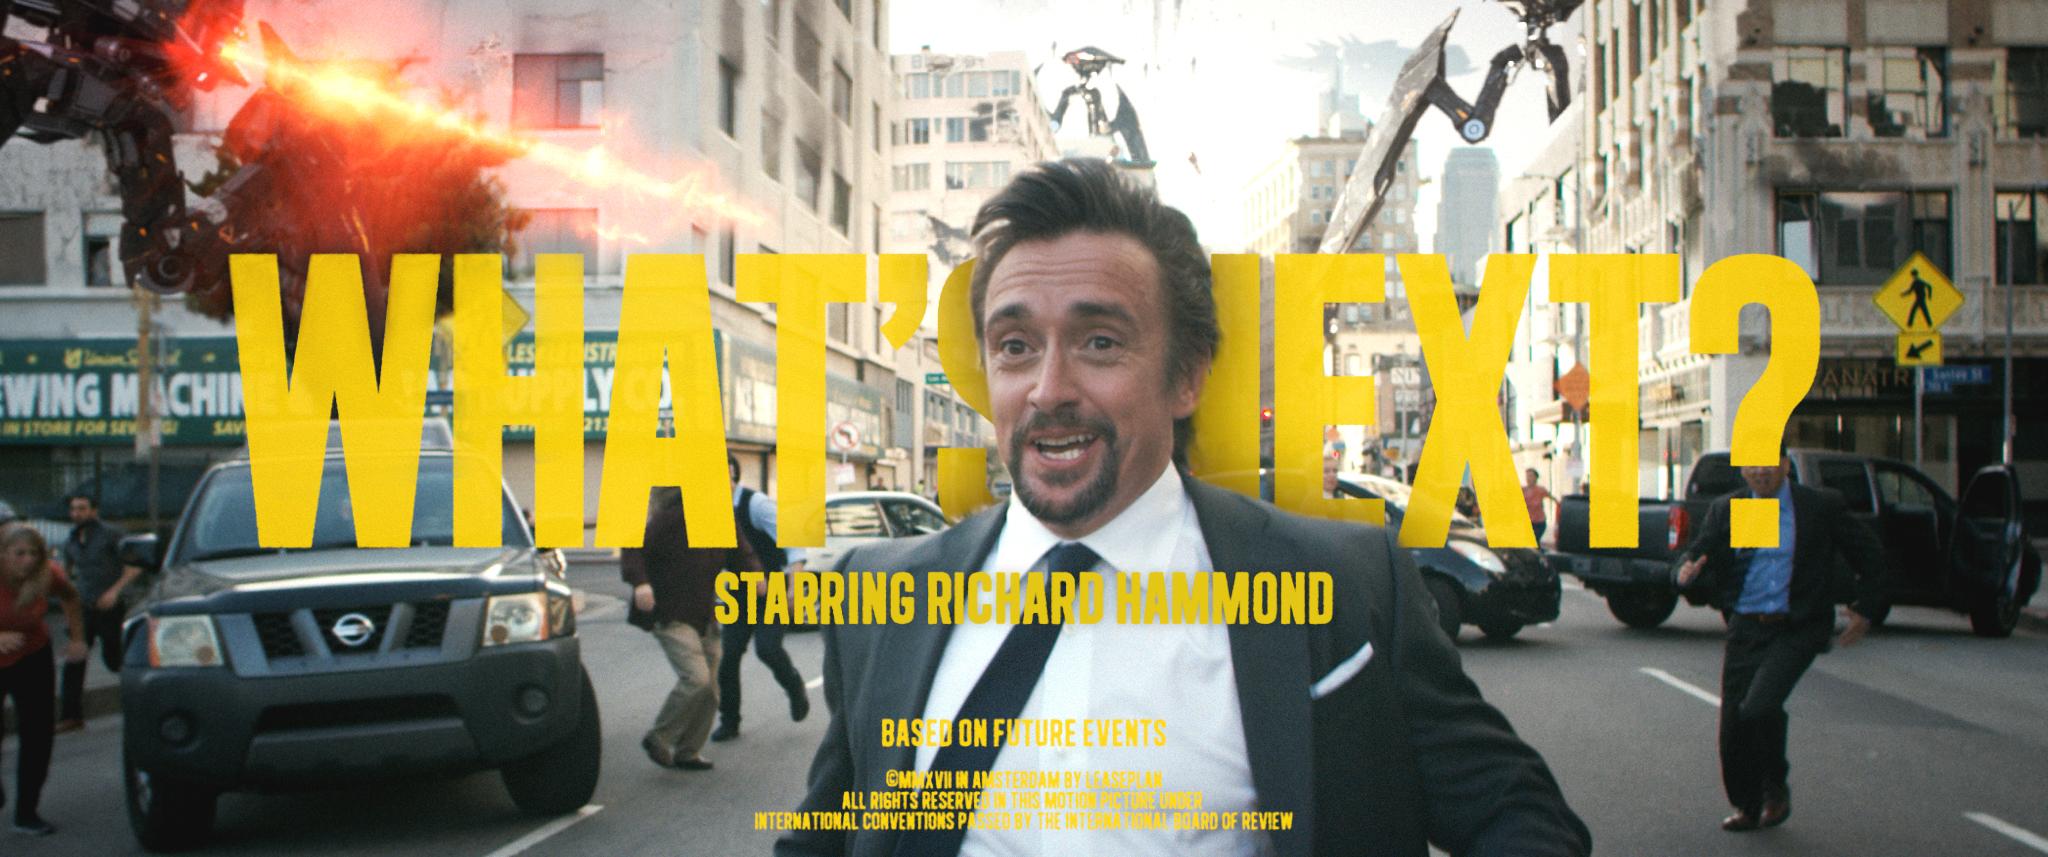 LeasePlan'den Richard Hammond'la Global Kampanya